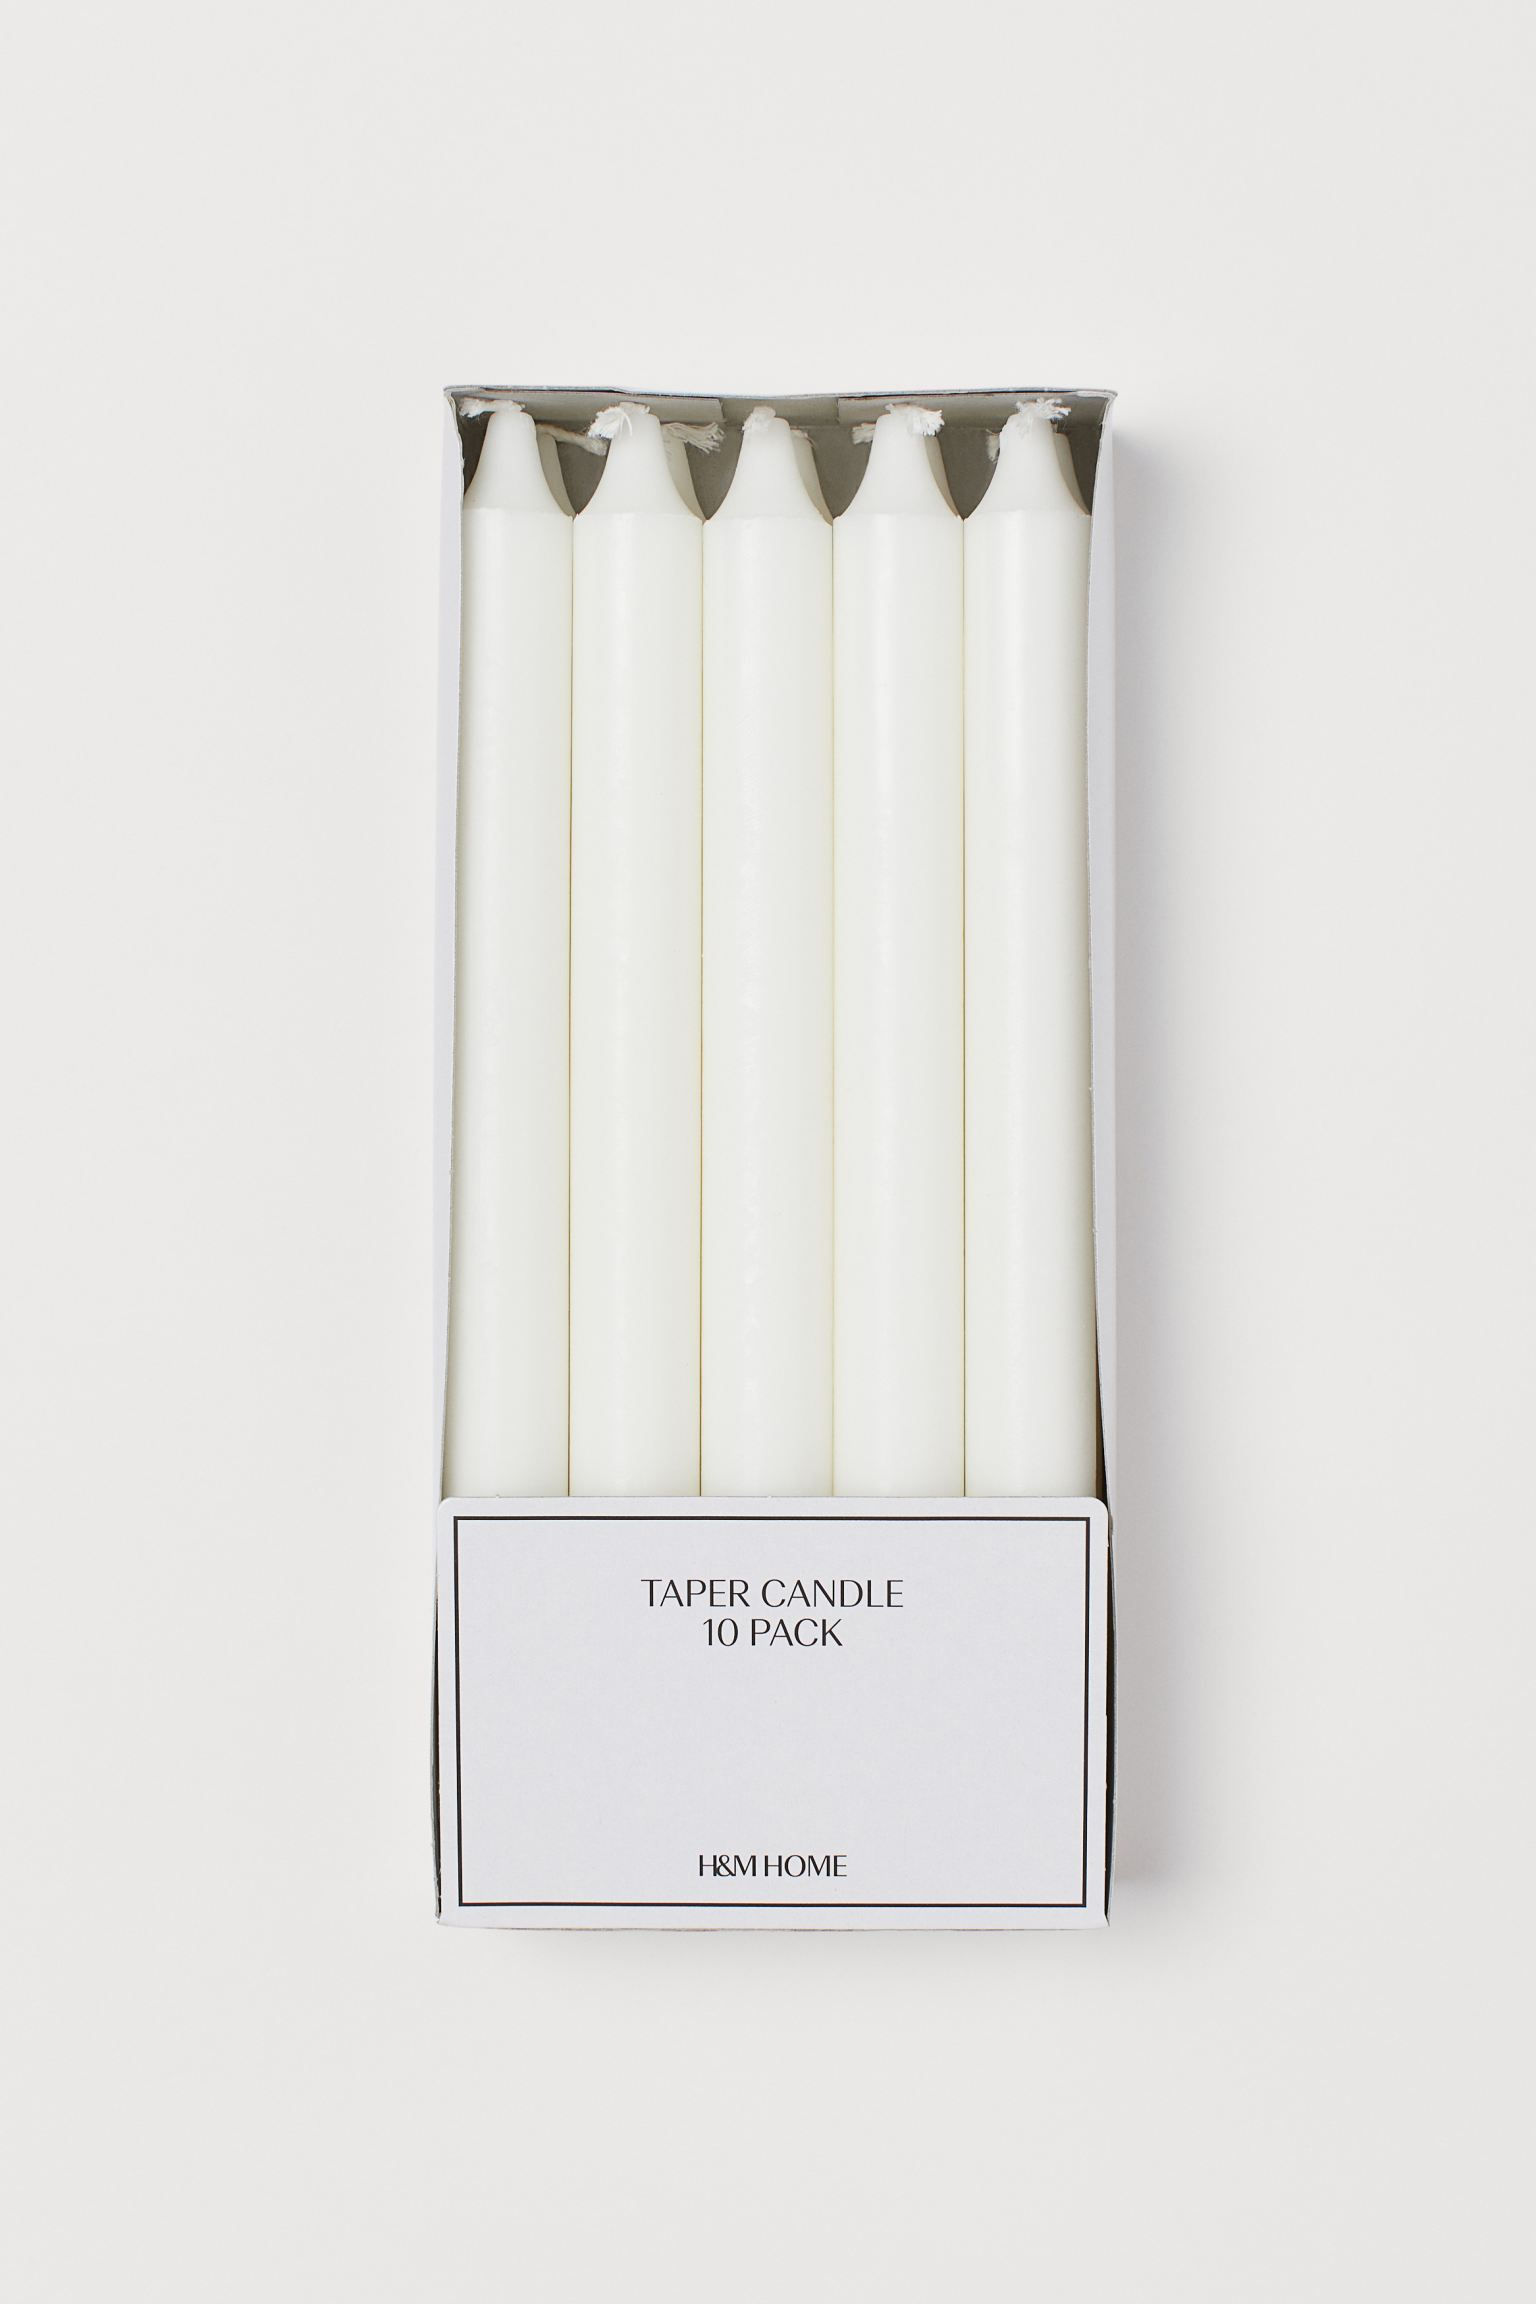 Taper candles.